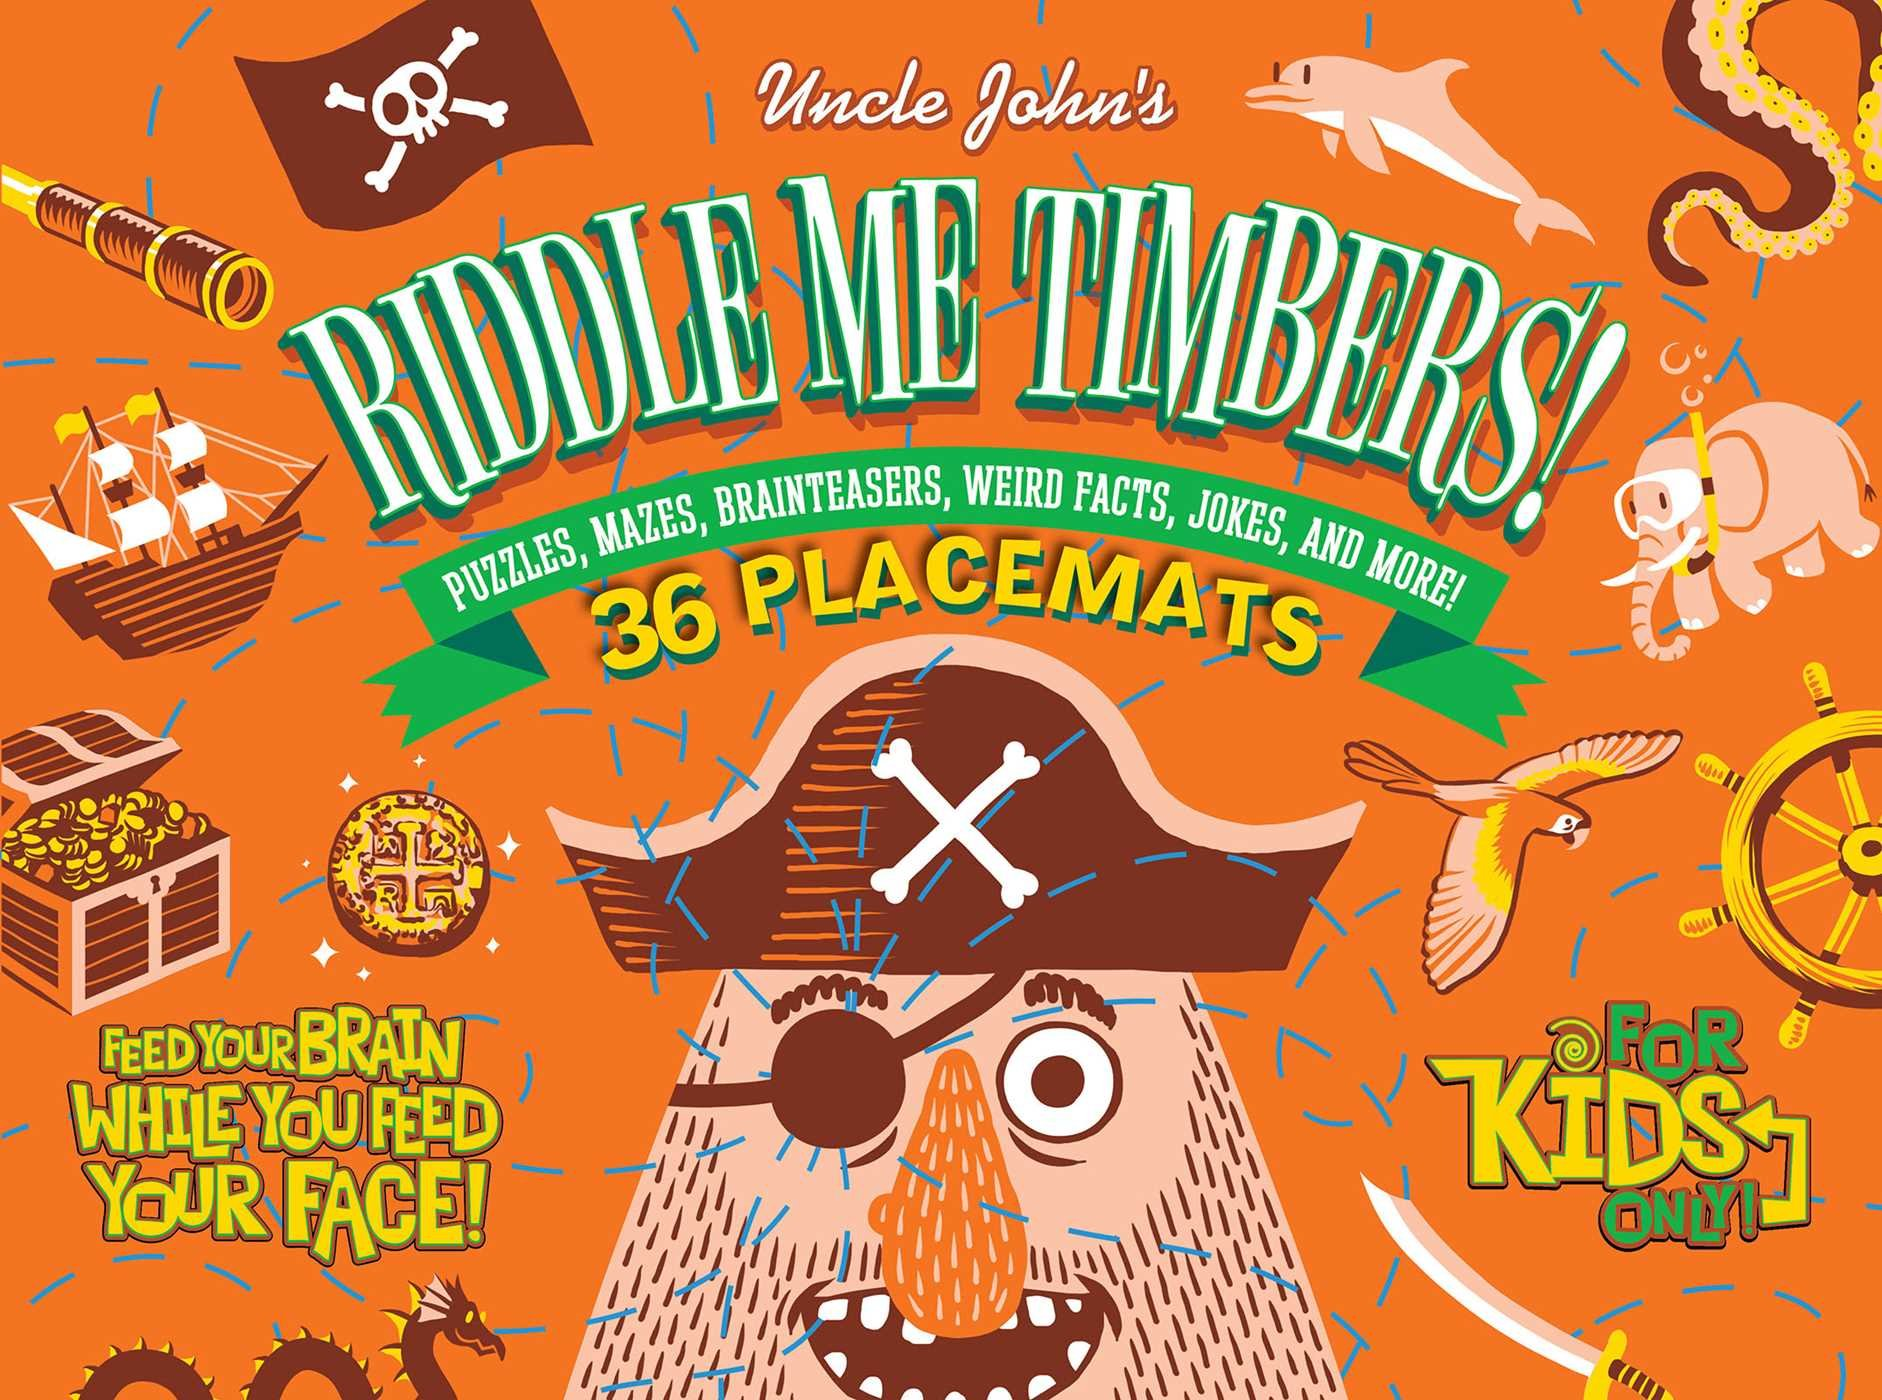 Uncle John's Riddle Me Timbers!: 36 Tear-off Placemats For Kids Only! ebook